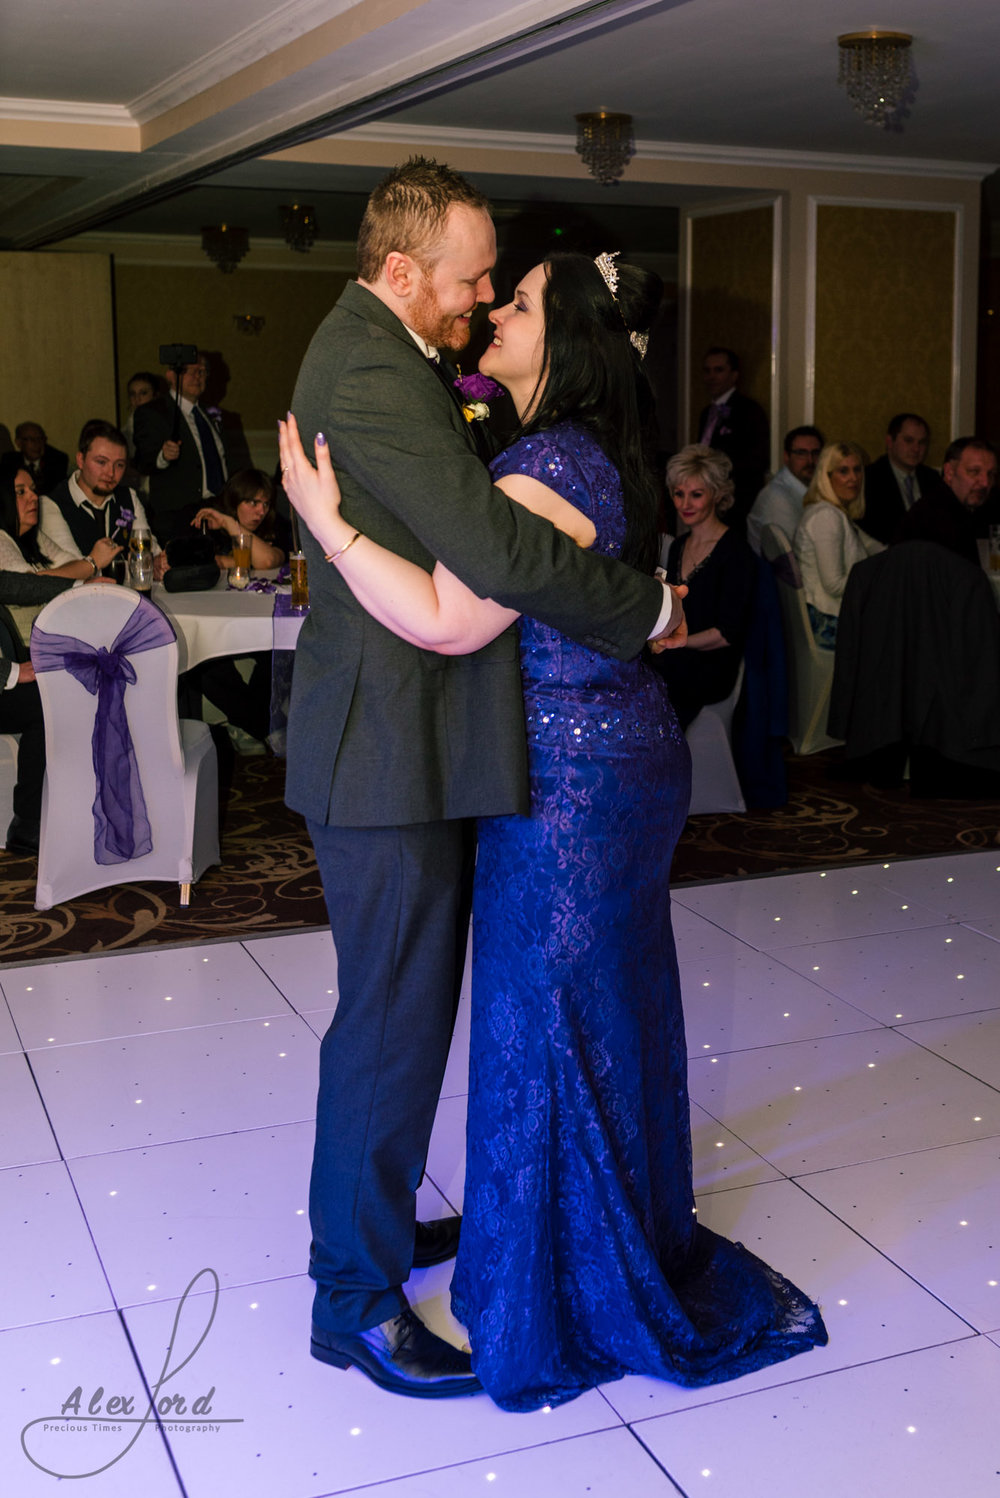 the bride and groom stand together on the dance floor for their first dance together as husband and wife